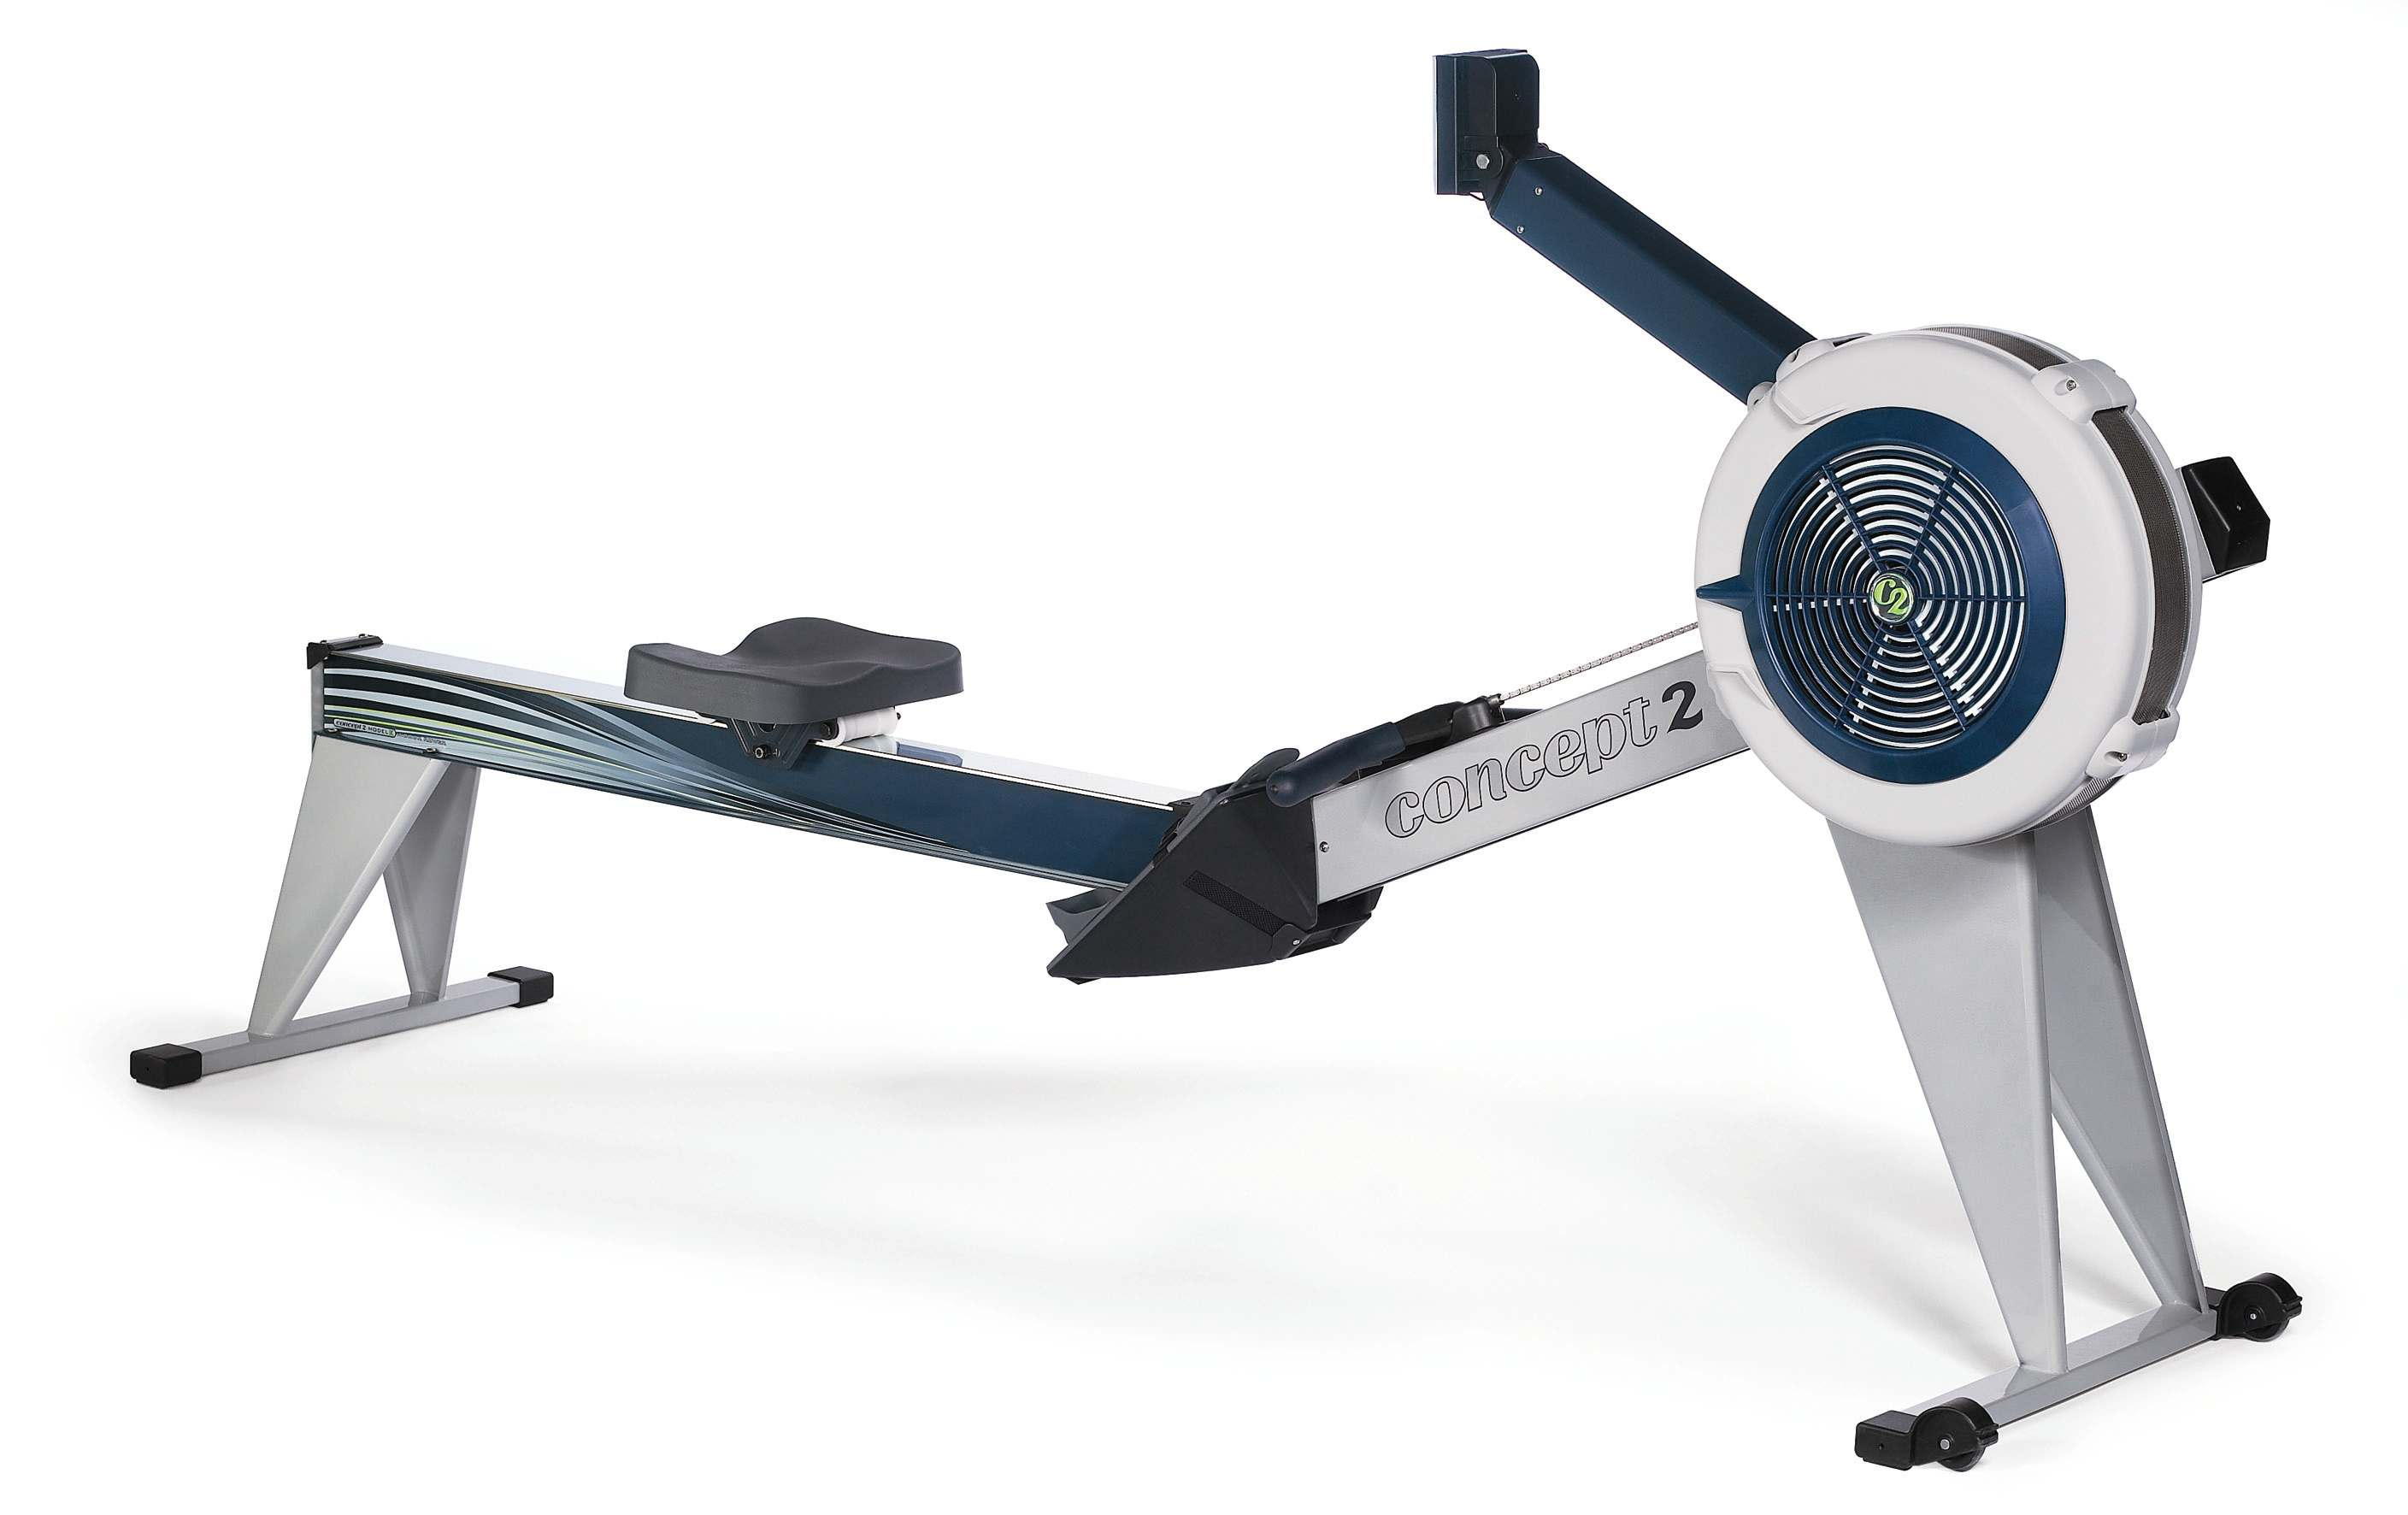 concept2 model e rowing machine